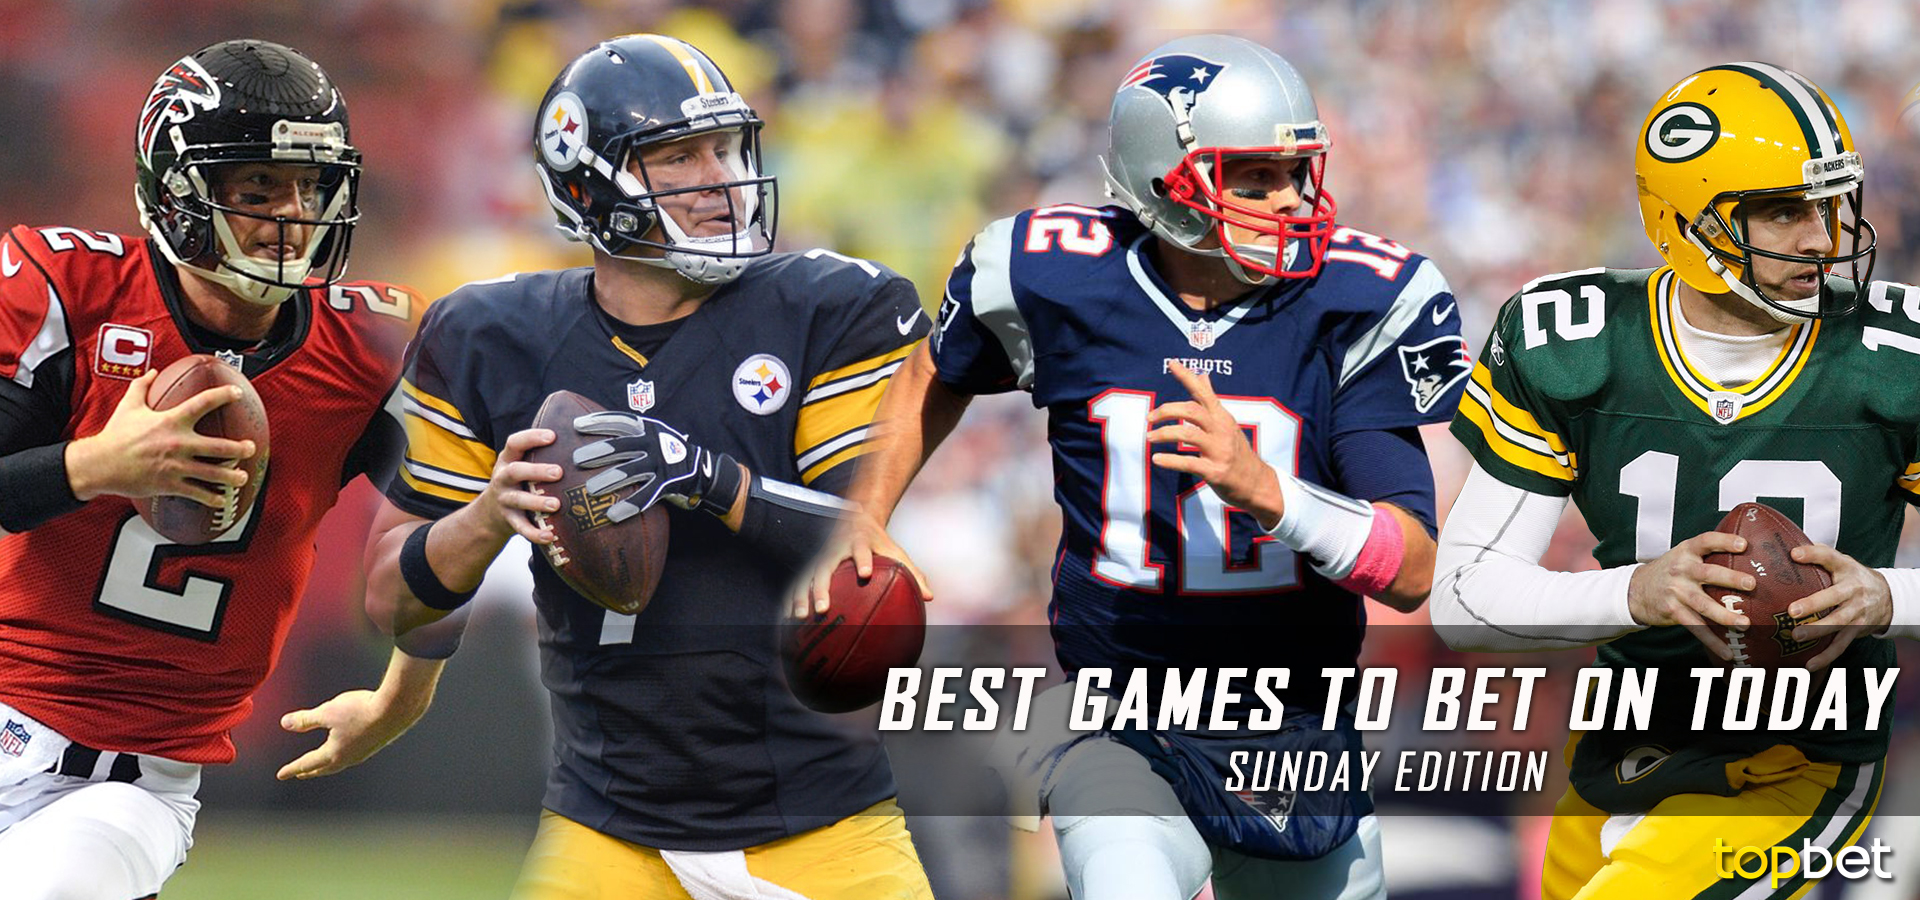 nfl today game nfl bet online